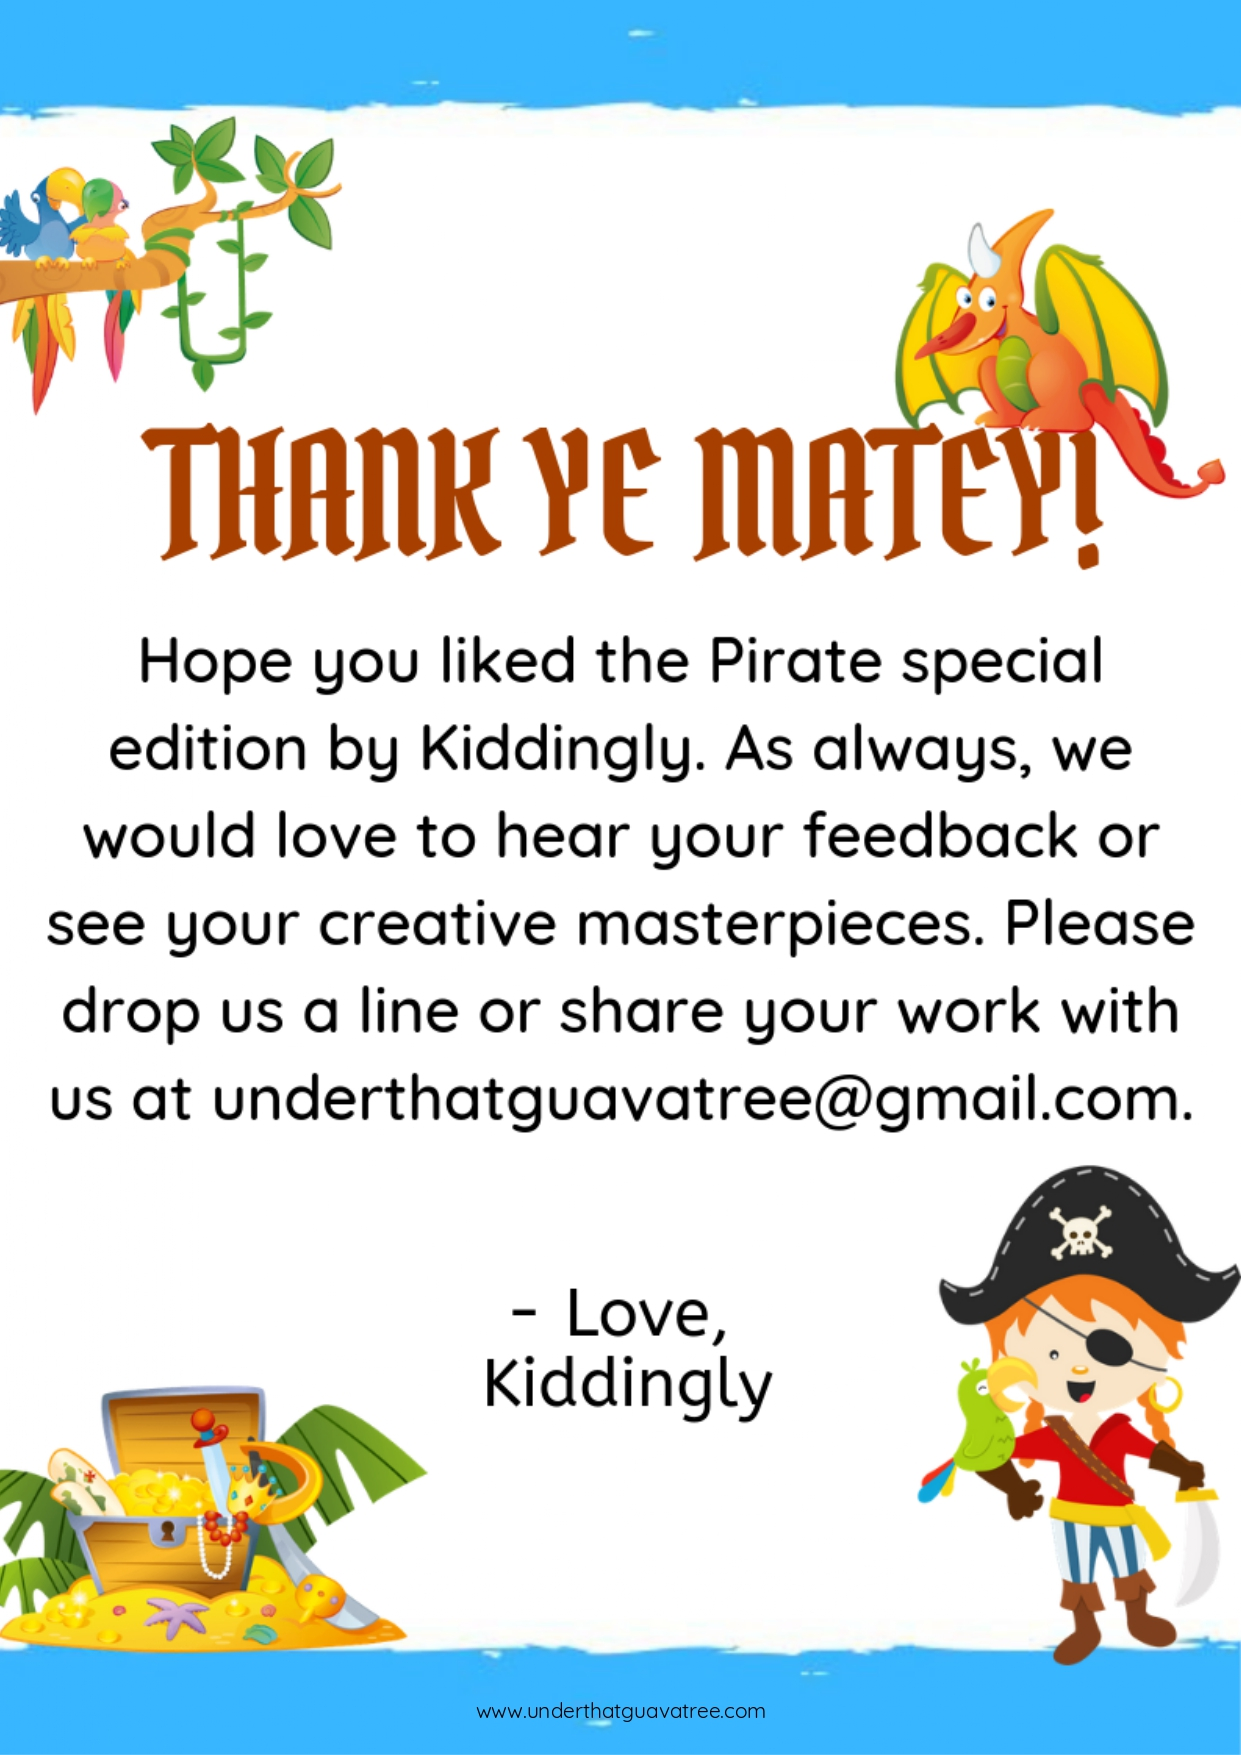 Fun With Pirates - Kiddingly Magazine - Pirates By Kiddingly page 0015